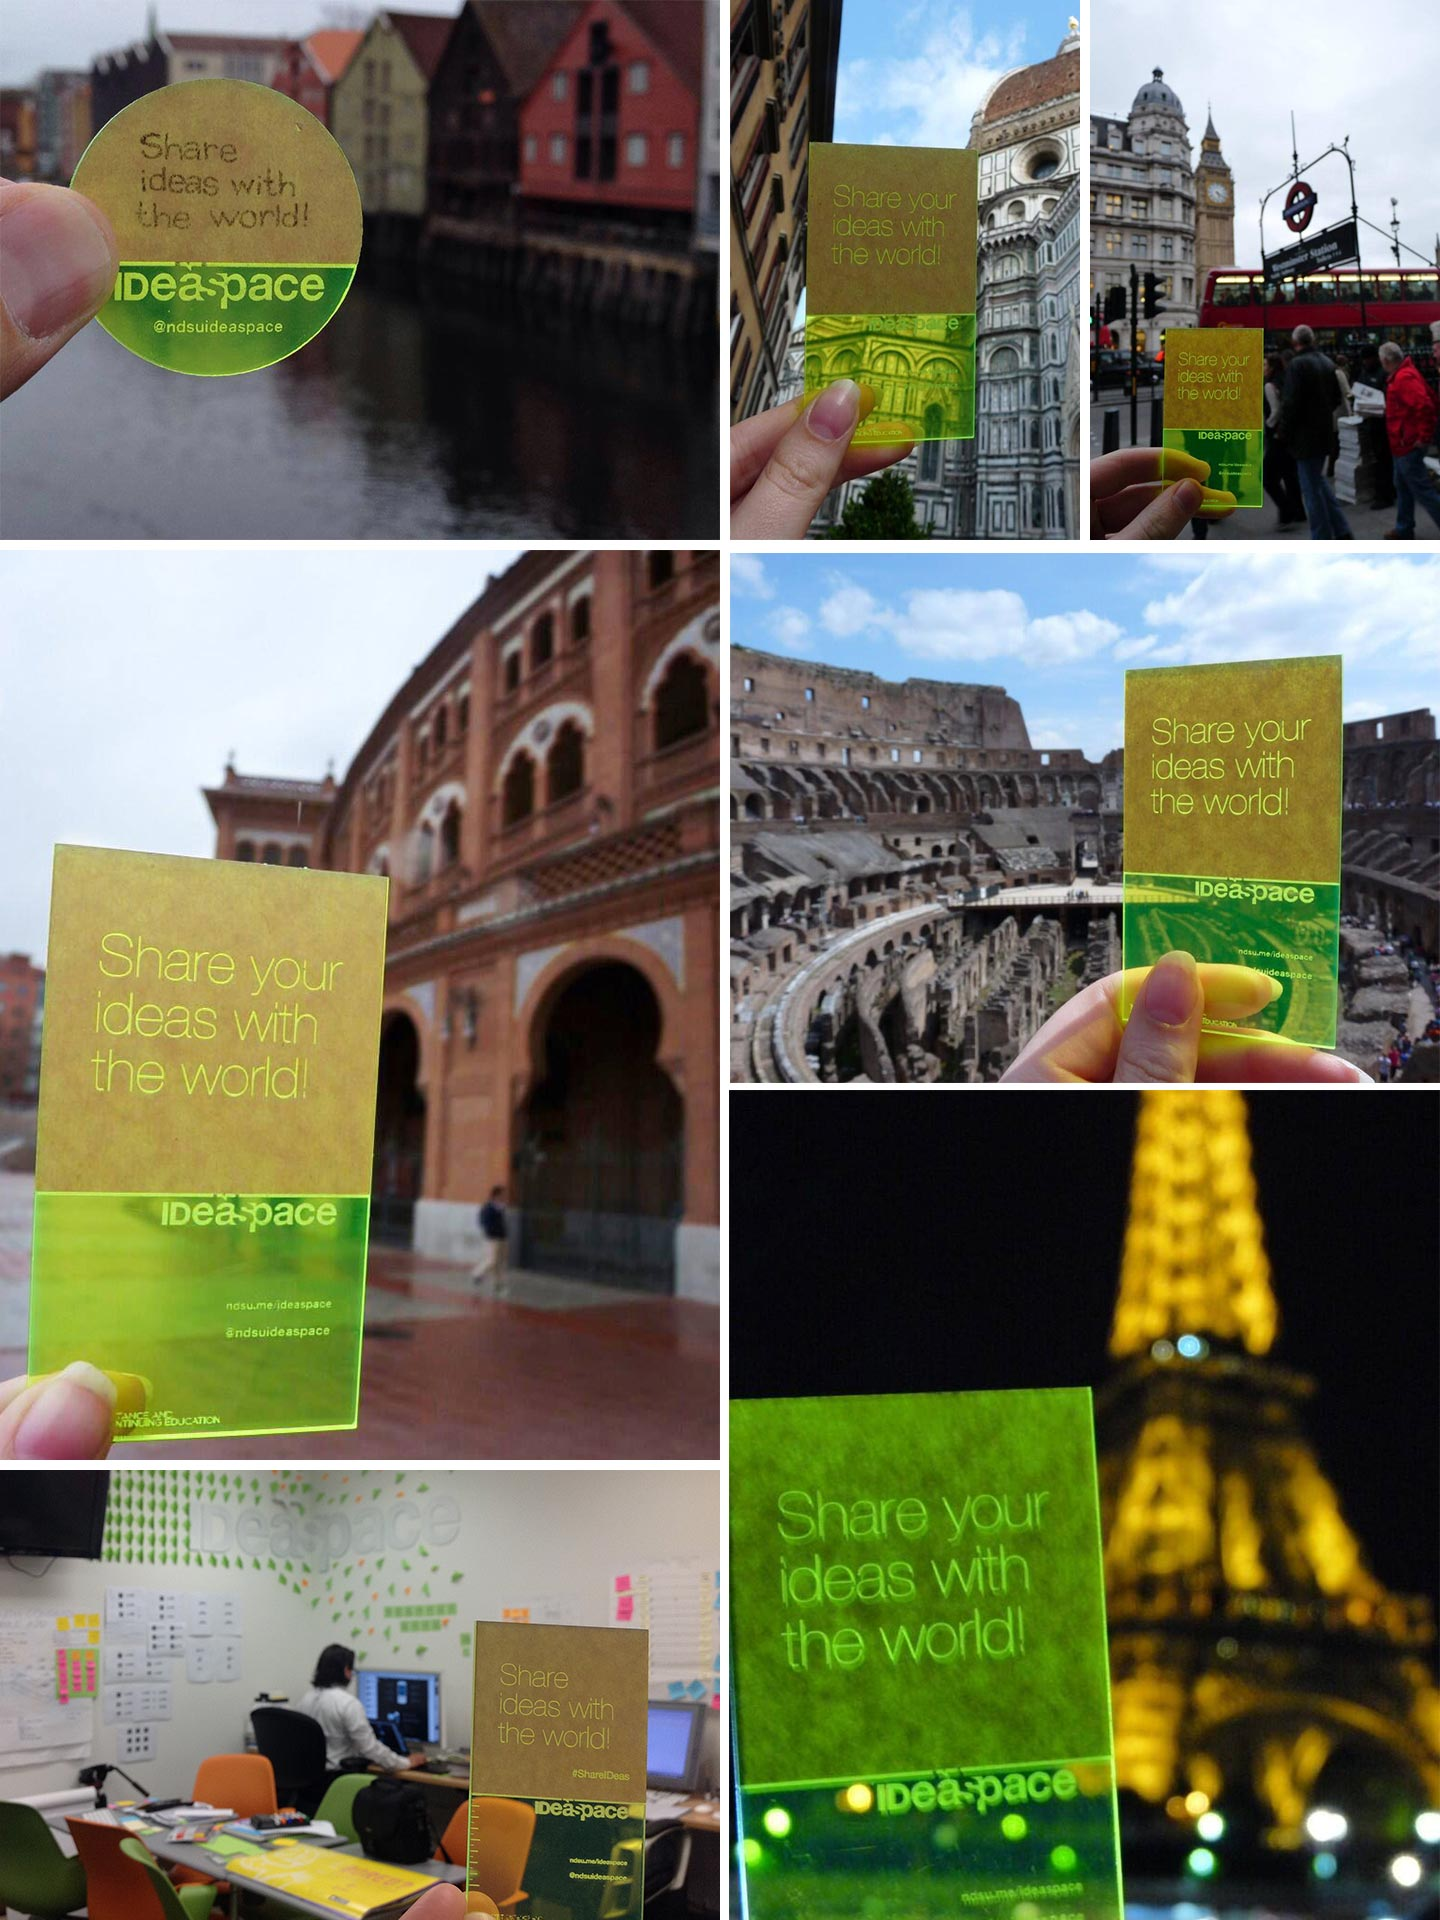 A grid of photos of hands holding lime green acrylic in front of famous landmarks across the world